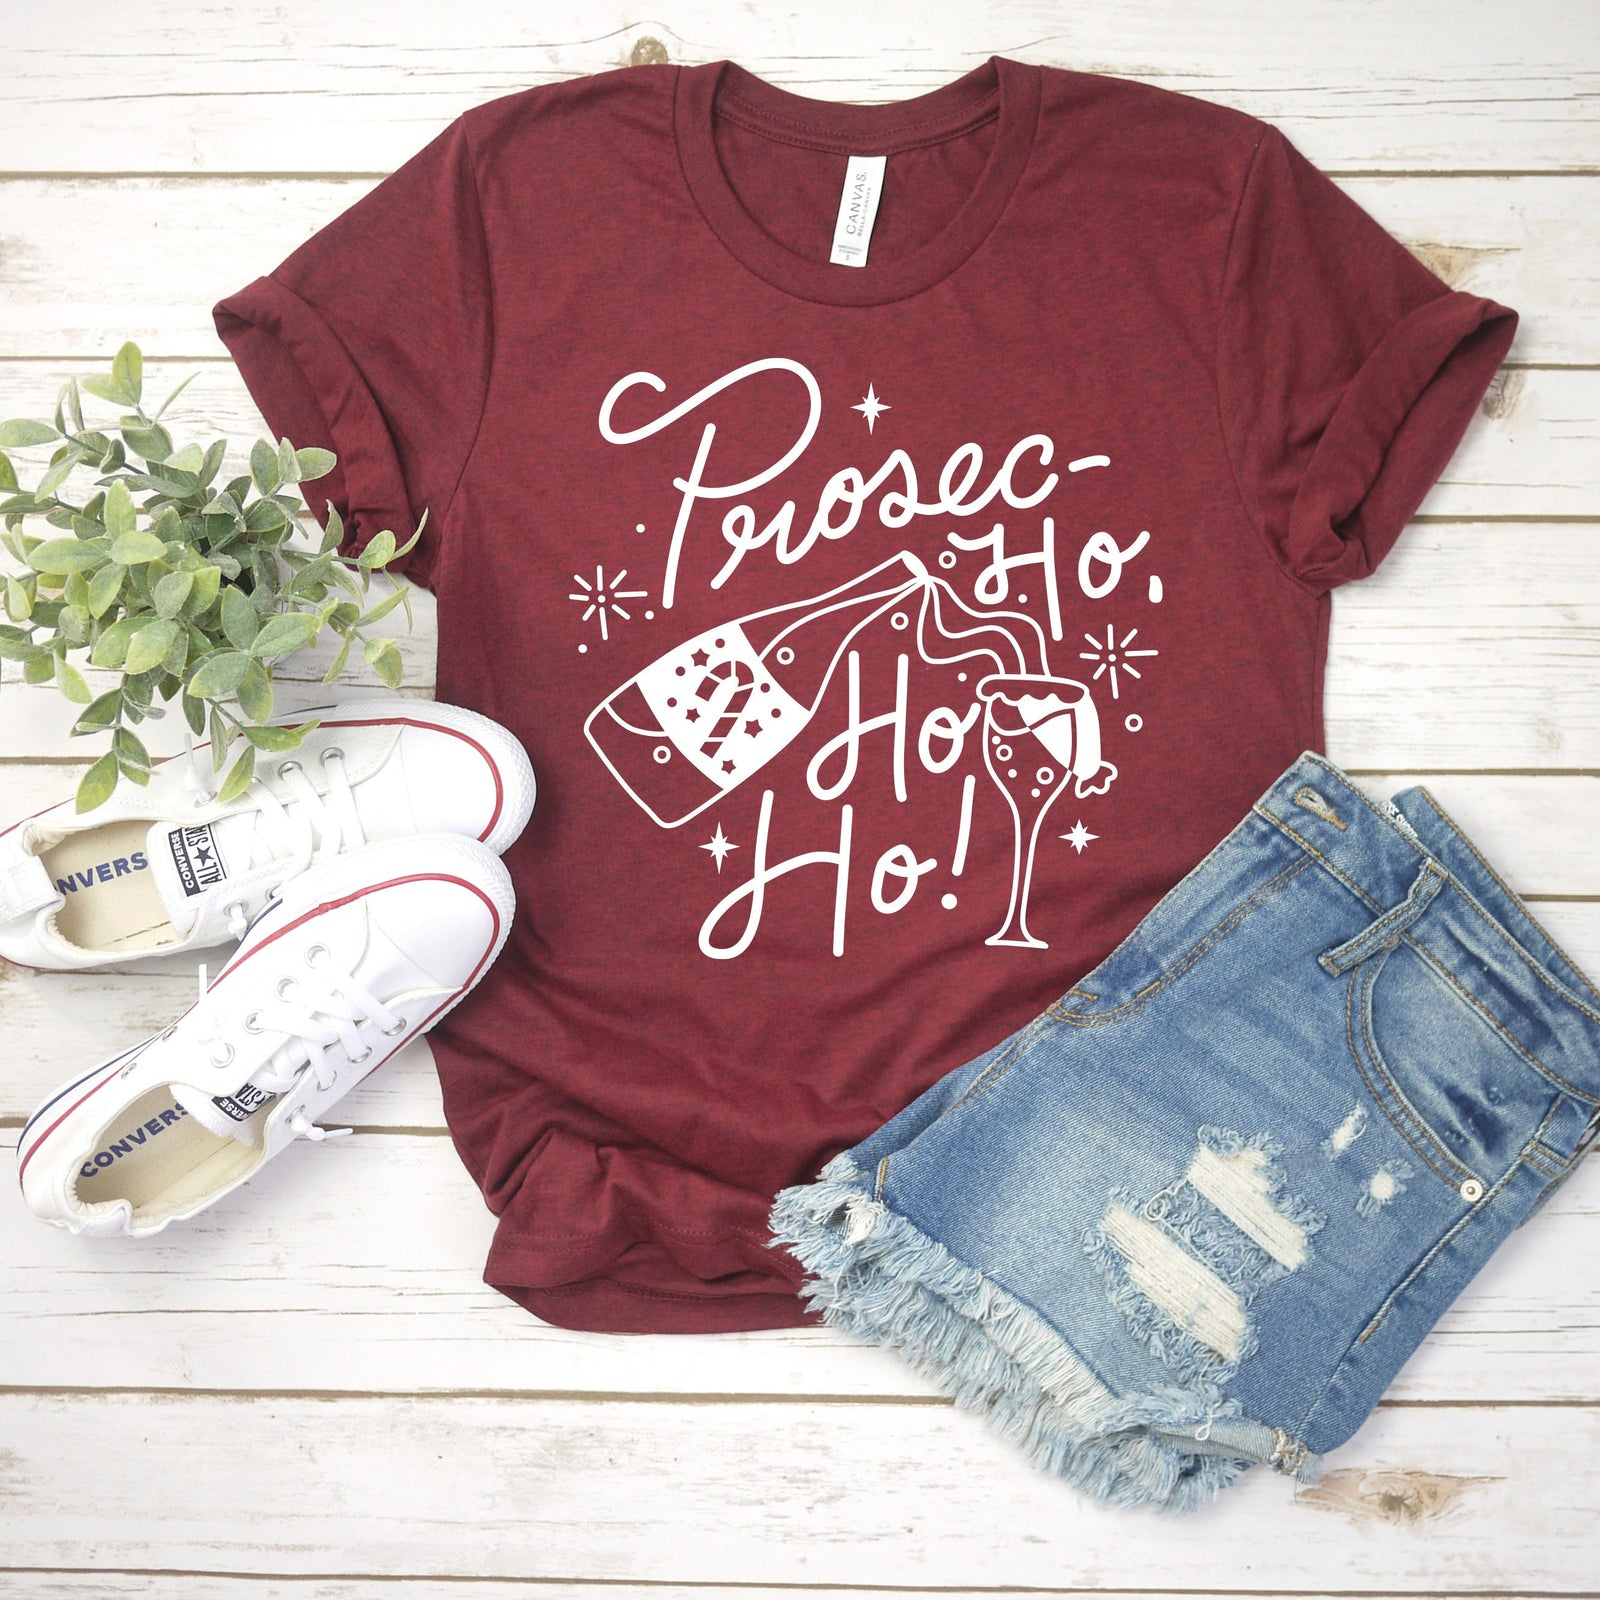 Prosec Ho Ho Ho Christmas T Shirt - Funny Wine Lover Gift - Christmas Party Couple Shirts - Prosecco Tee